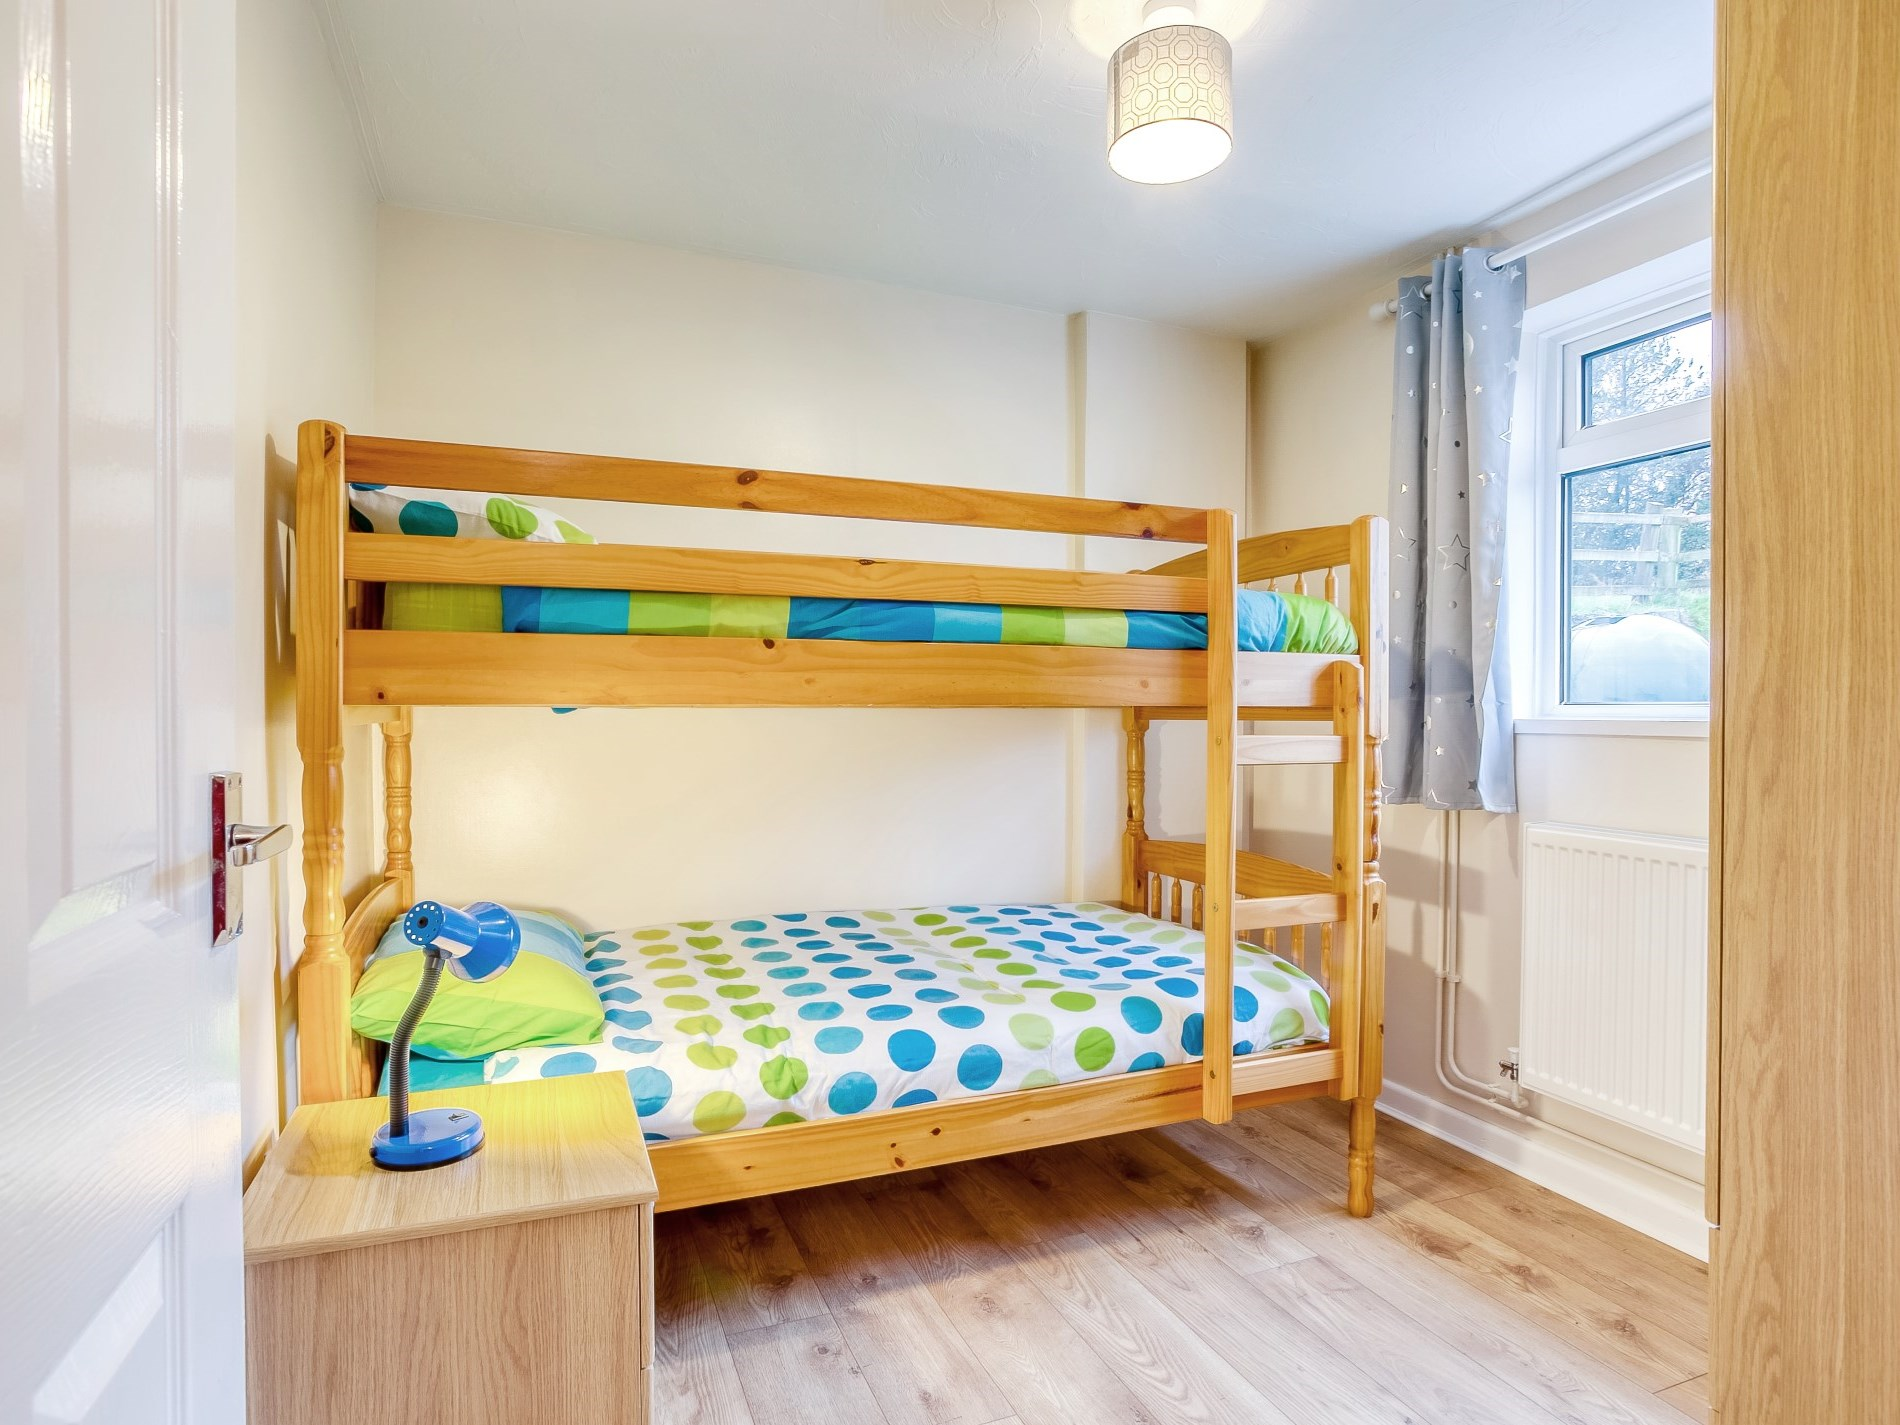 The bunk bedroom is perfect for the children